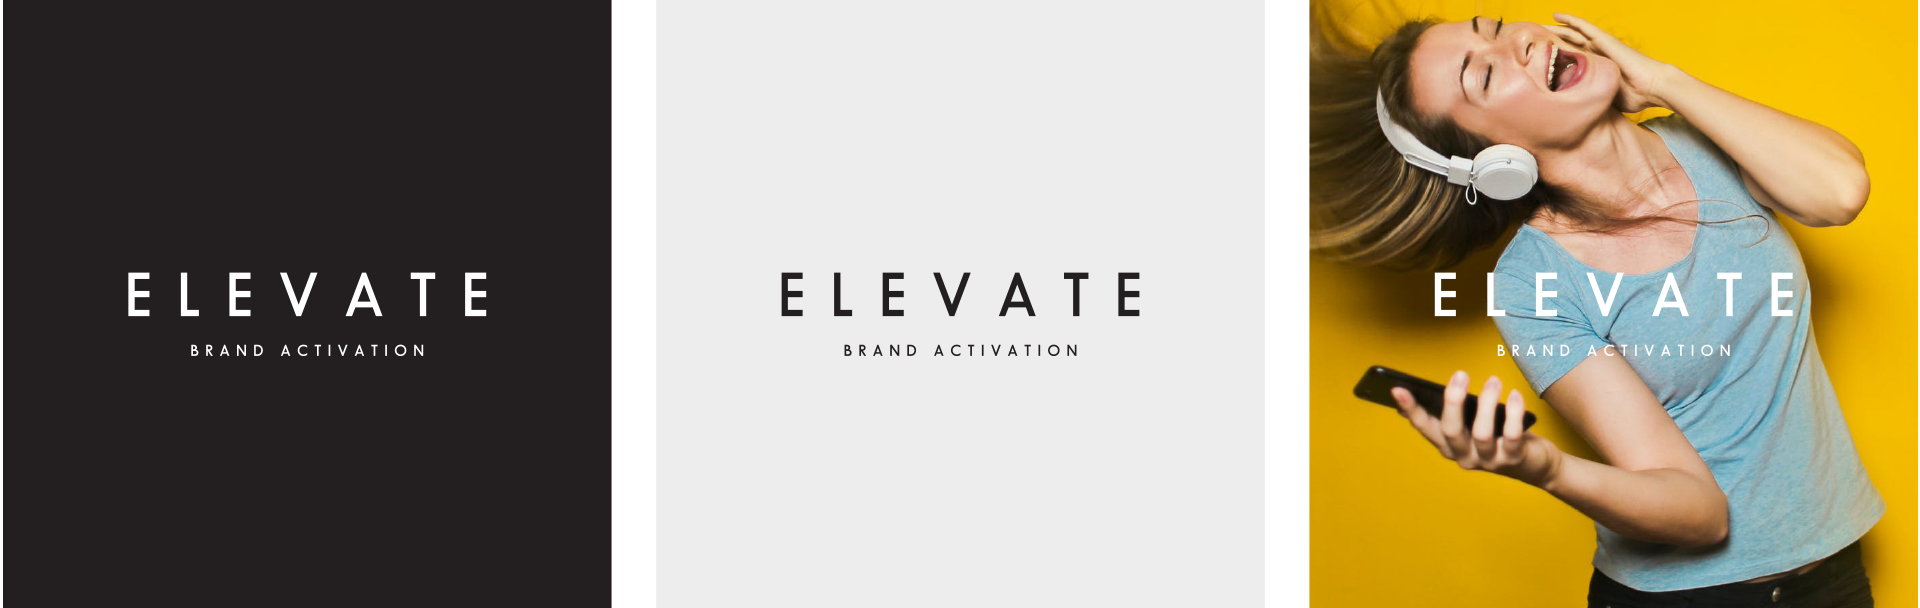 Elevate-brand.png